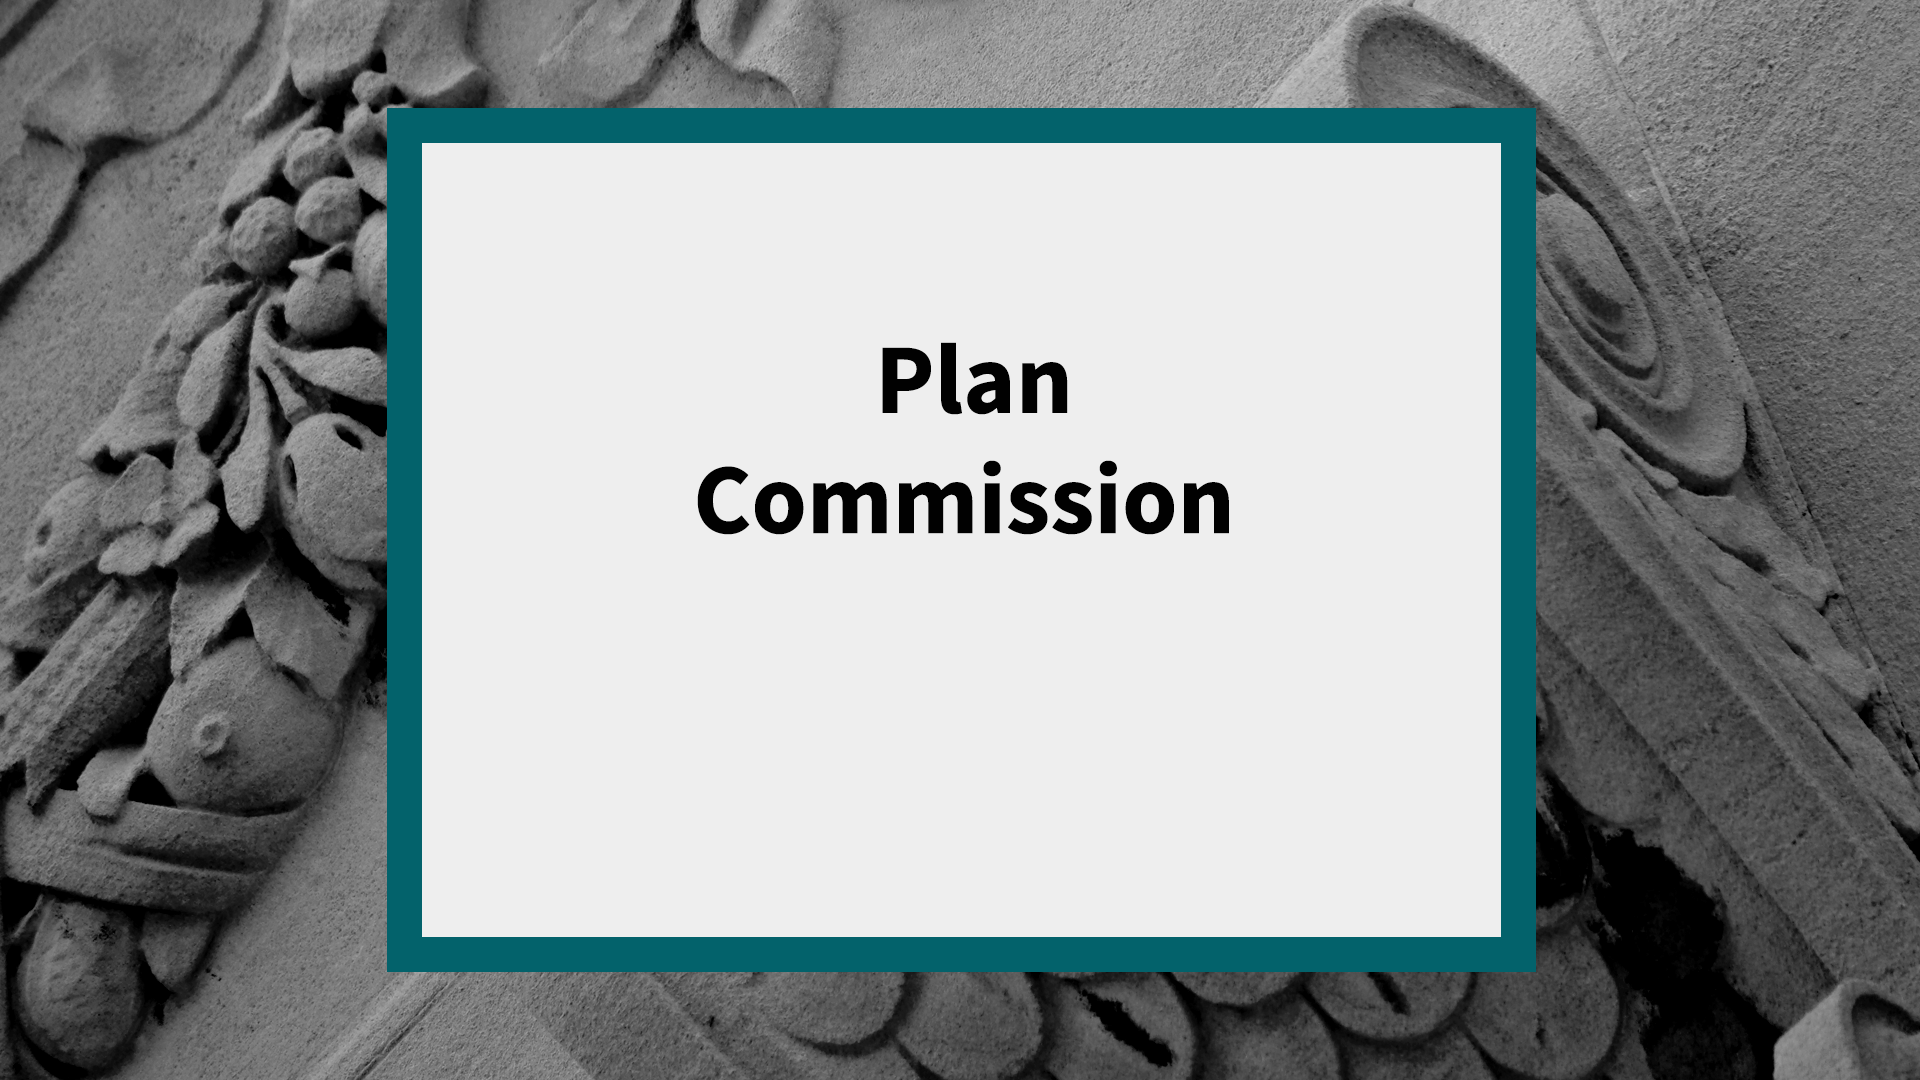 Plan Commission